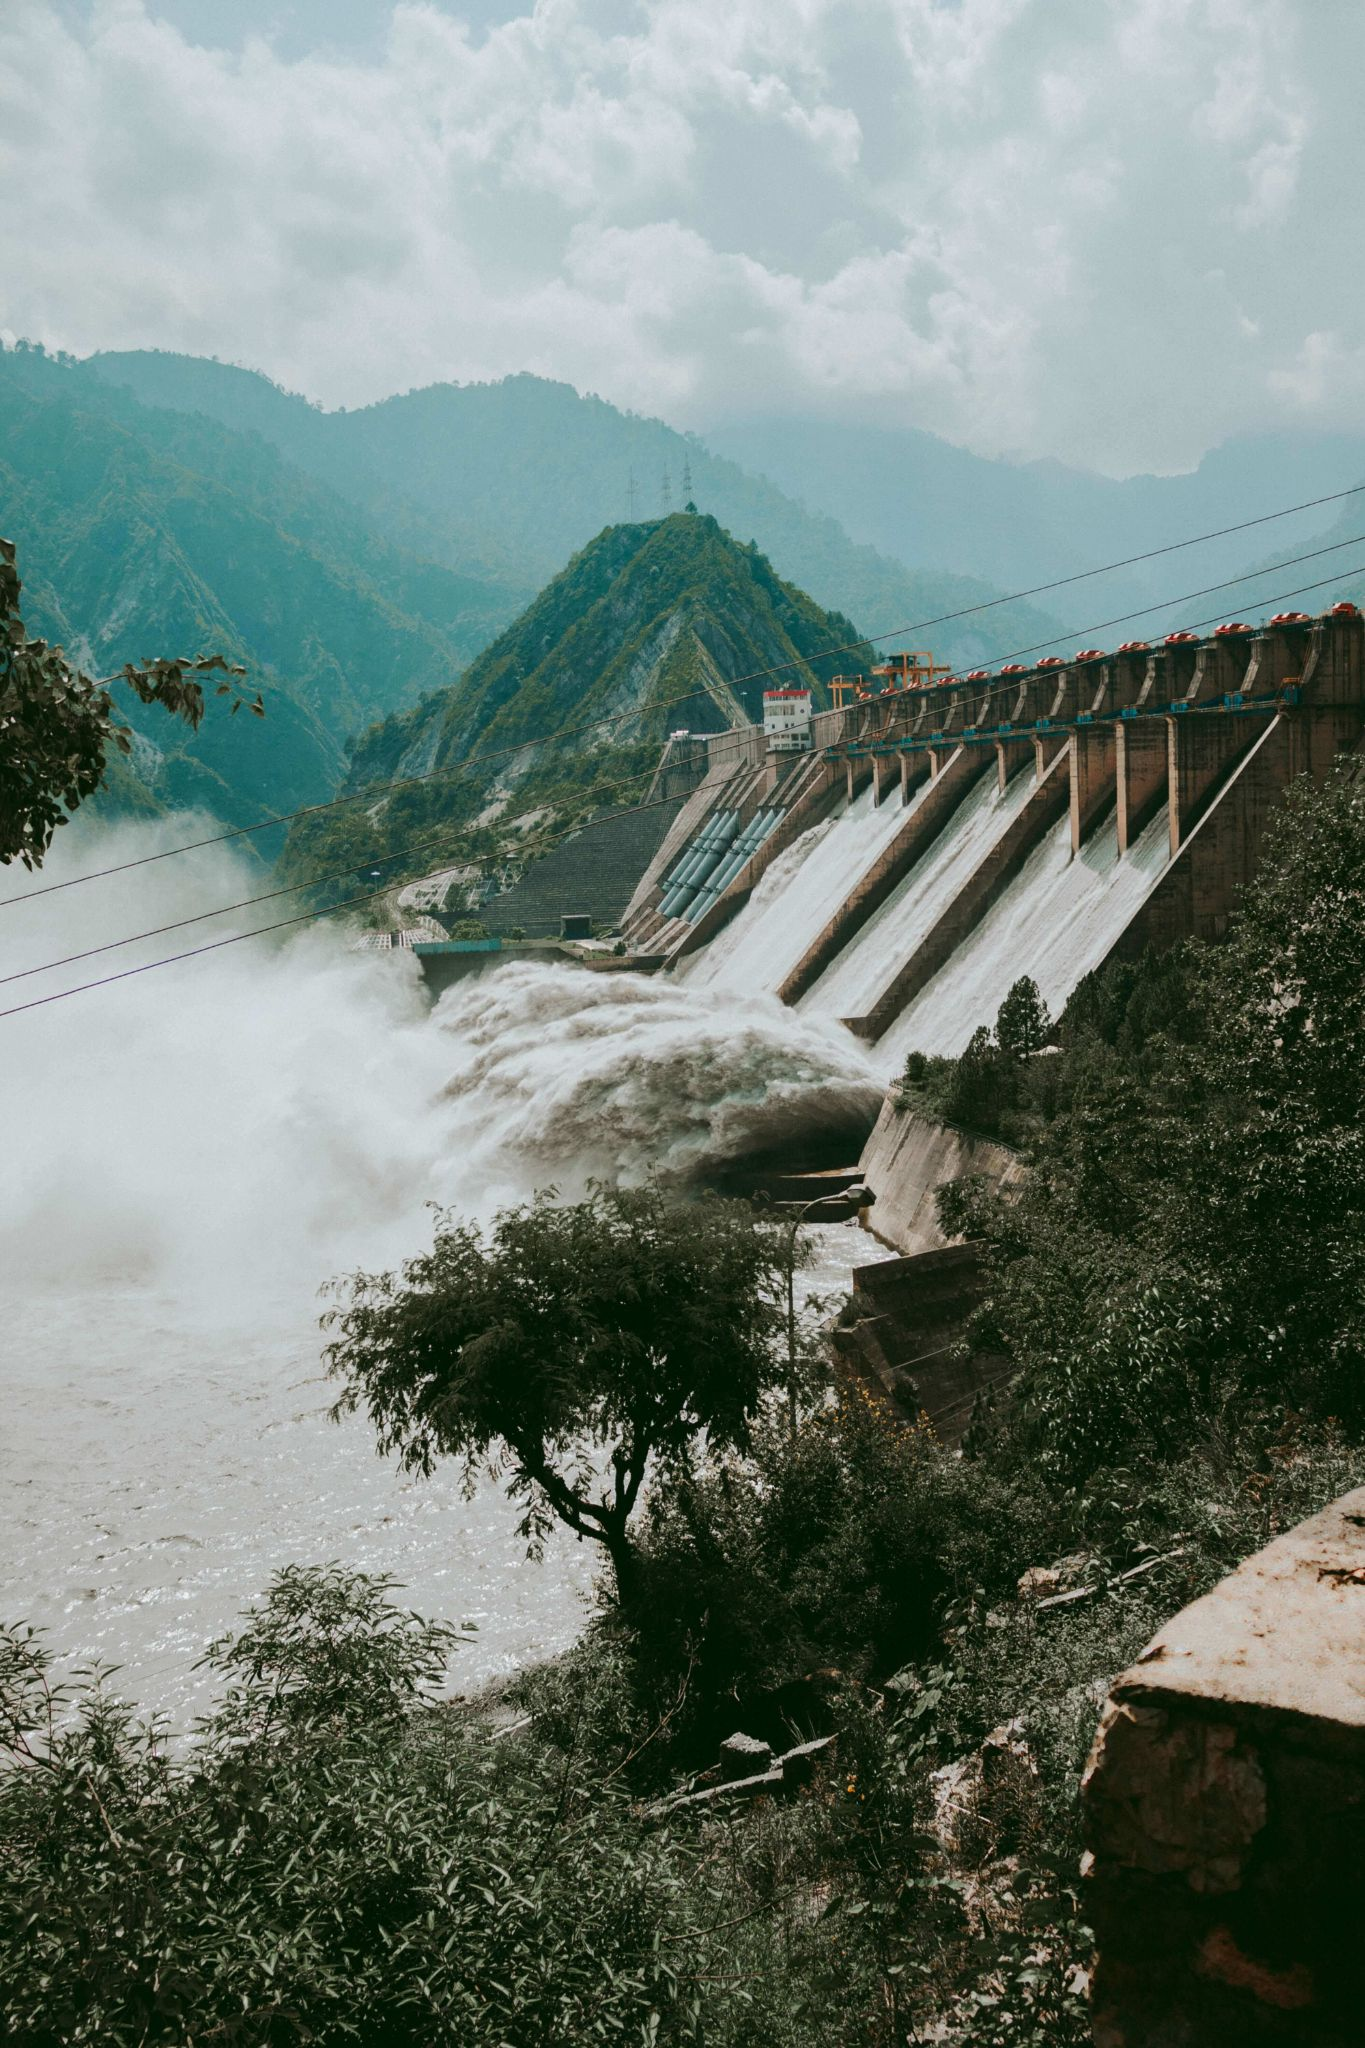 Dam Used For Hydropower